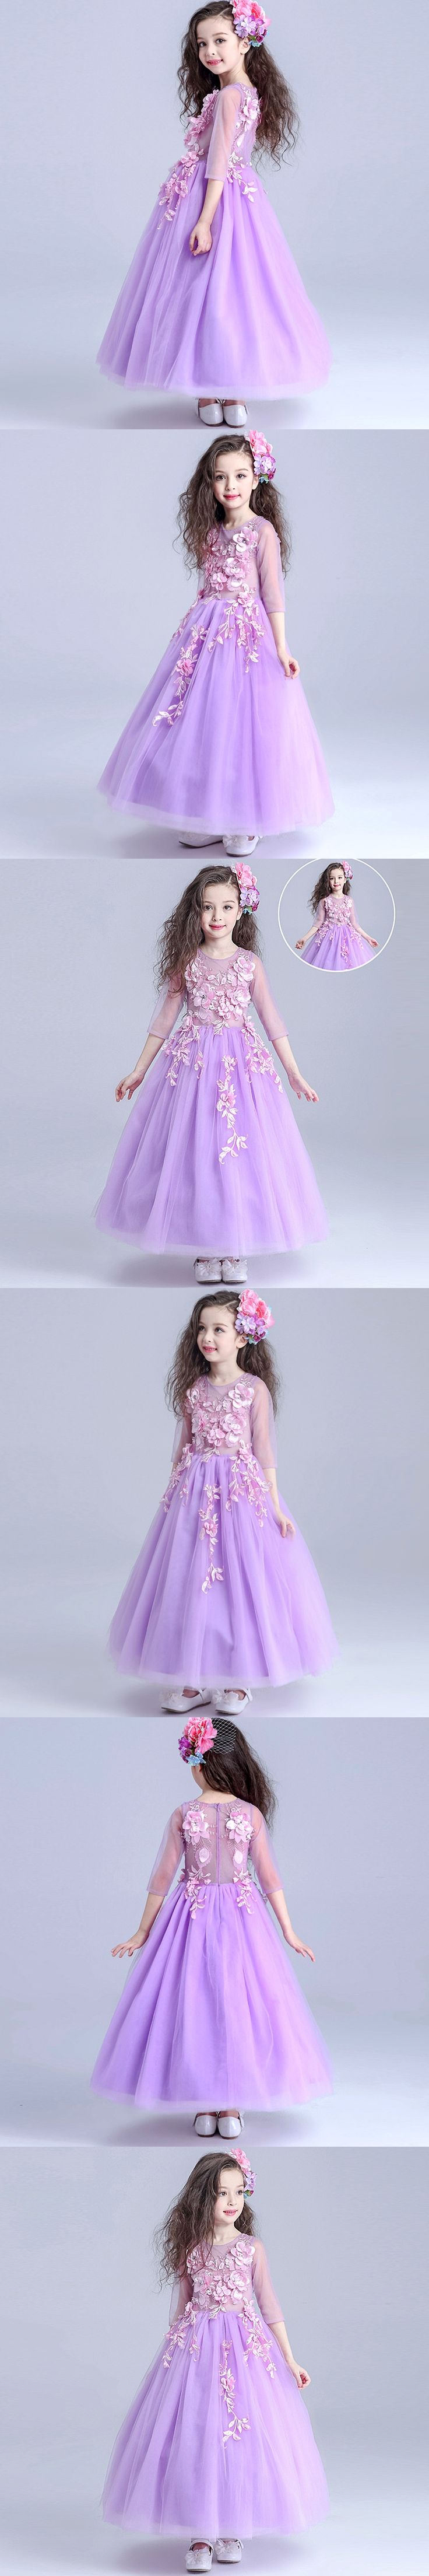 HOT Wedding Party Purple Formal Flowers Girl Dress Baby Pageant Dresses Birthday Cummunion Toddler Kids evening gowns Custom